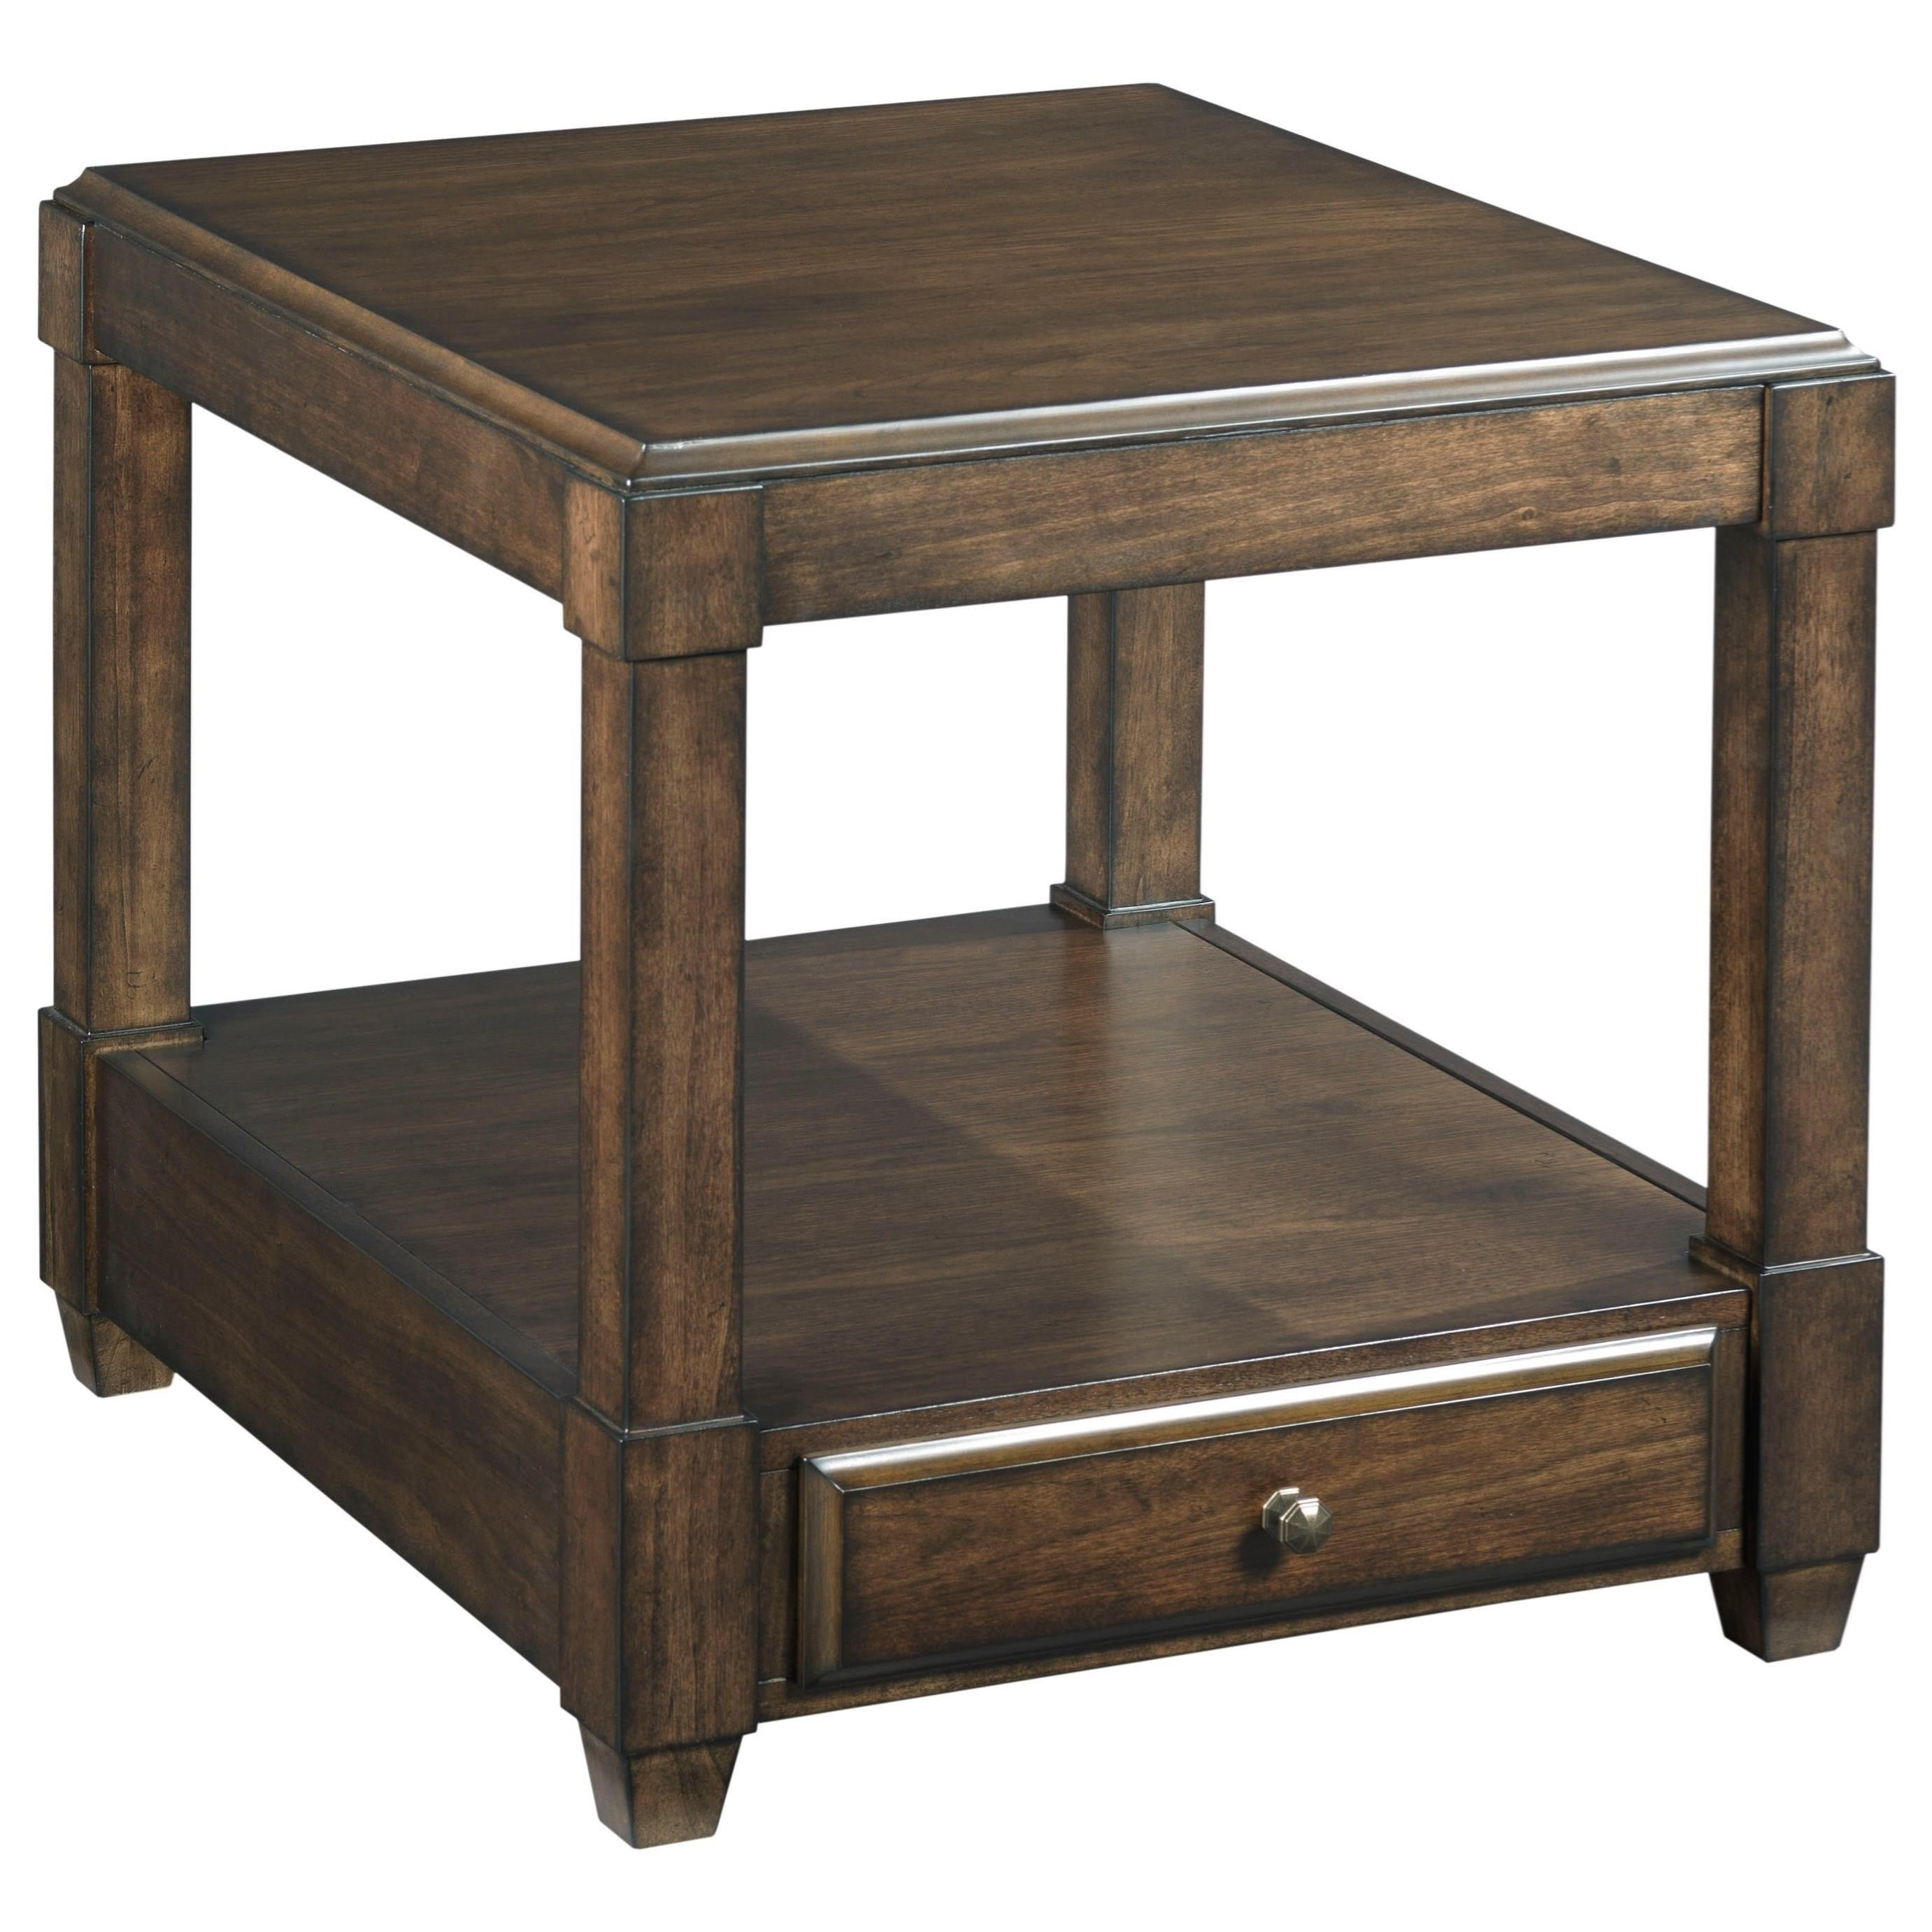 Hammary Halsey Rectangular End Table With Soft Close Drawer   Hudsonu0027s  Furniture   End Tables